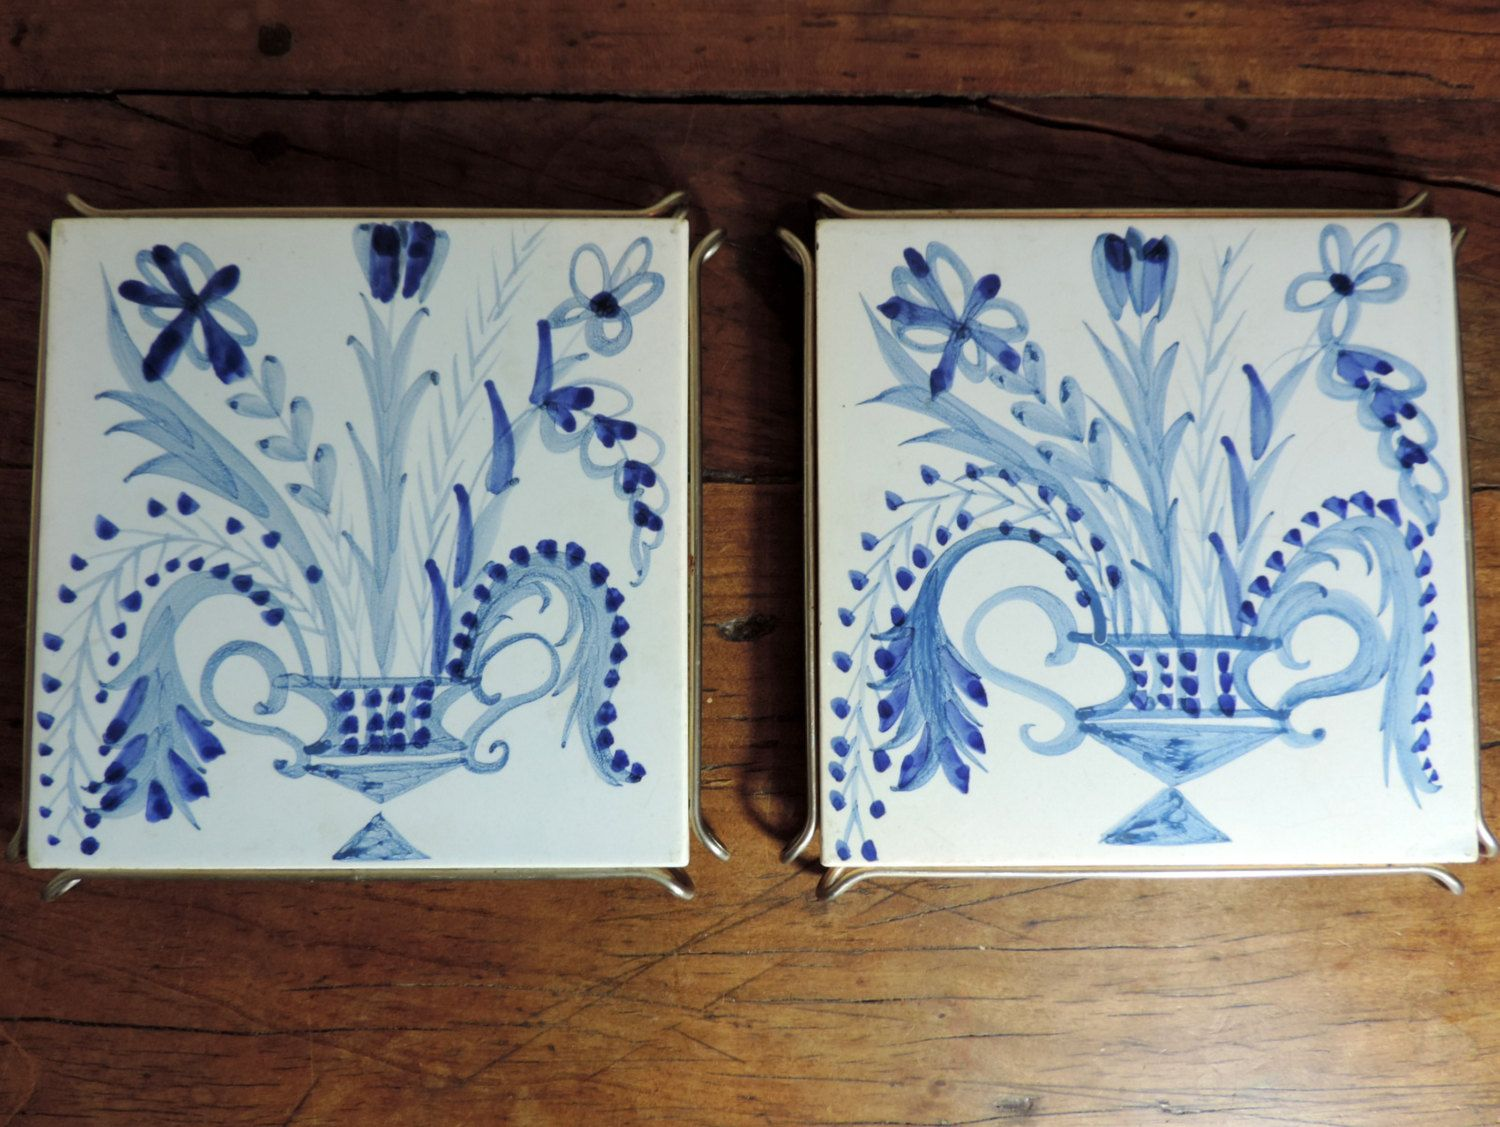 French vintage trivetsfrench vintage hand painted tile trivets french vintage trivetsfrench vintage hand painted tile trivetsvintage trivetfrench vintage ceramic tile trivets set of of trivets by souvenirsdevoyages dailygadgetfo Images